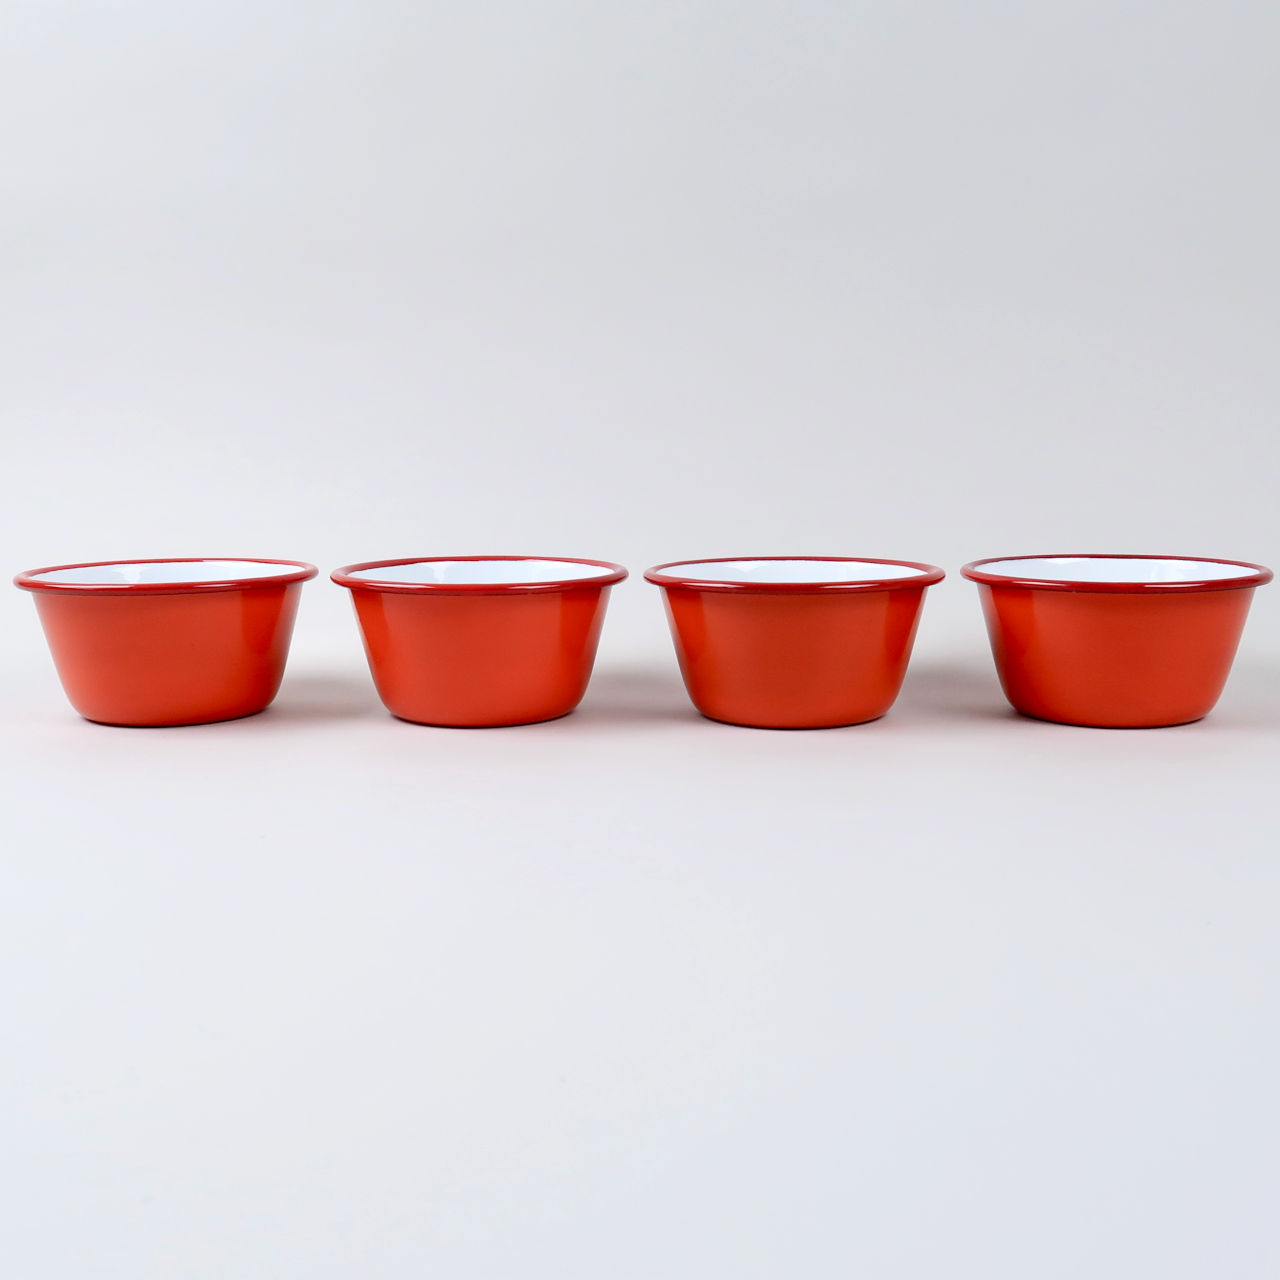 Box of 4 Small Enamel Bowls - Pillarbox Red